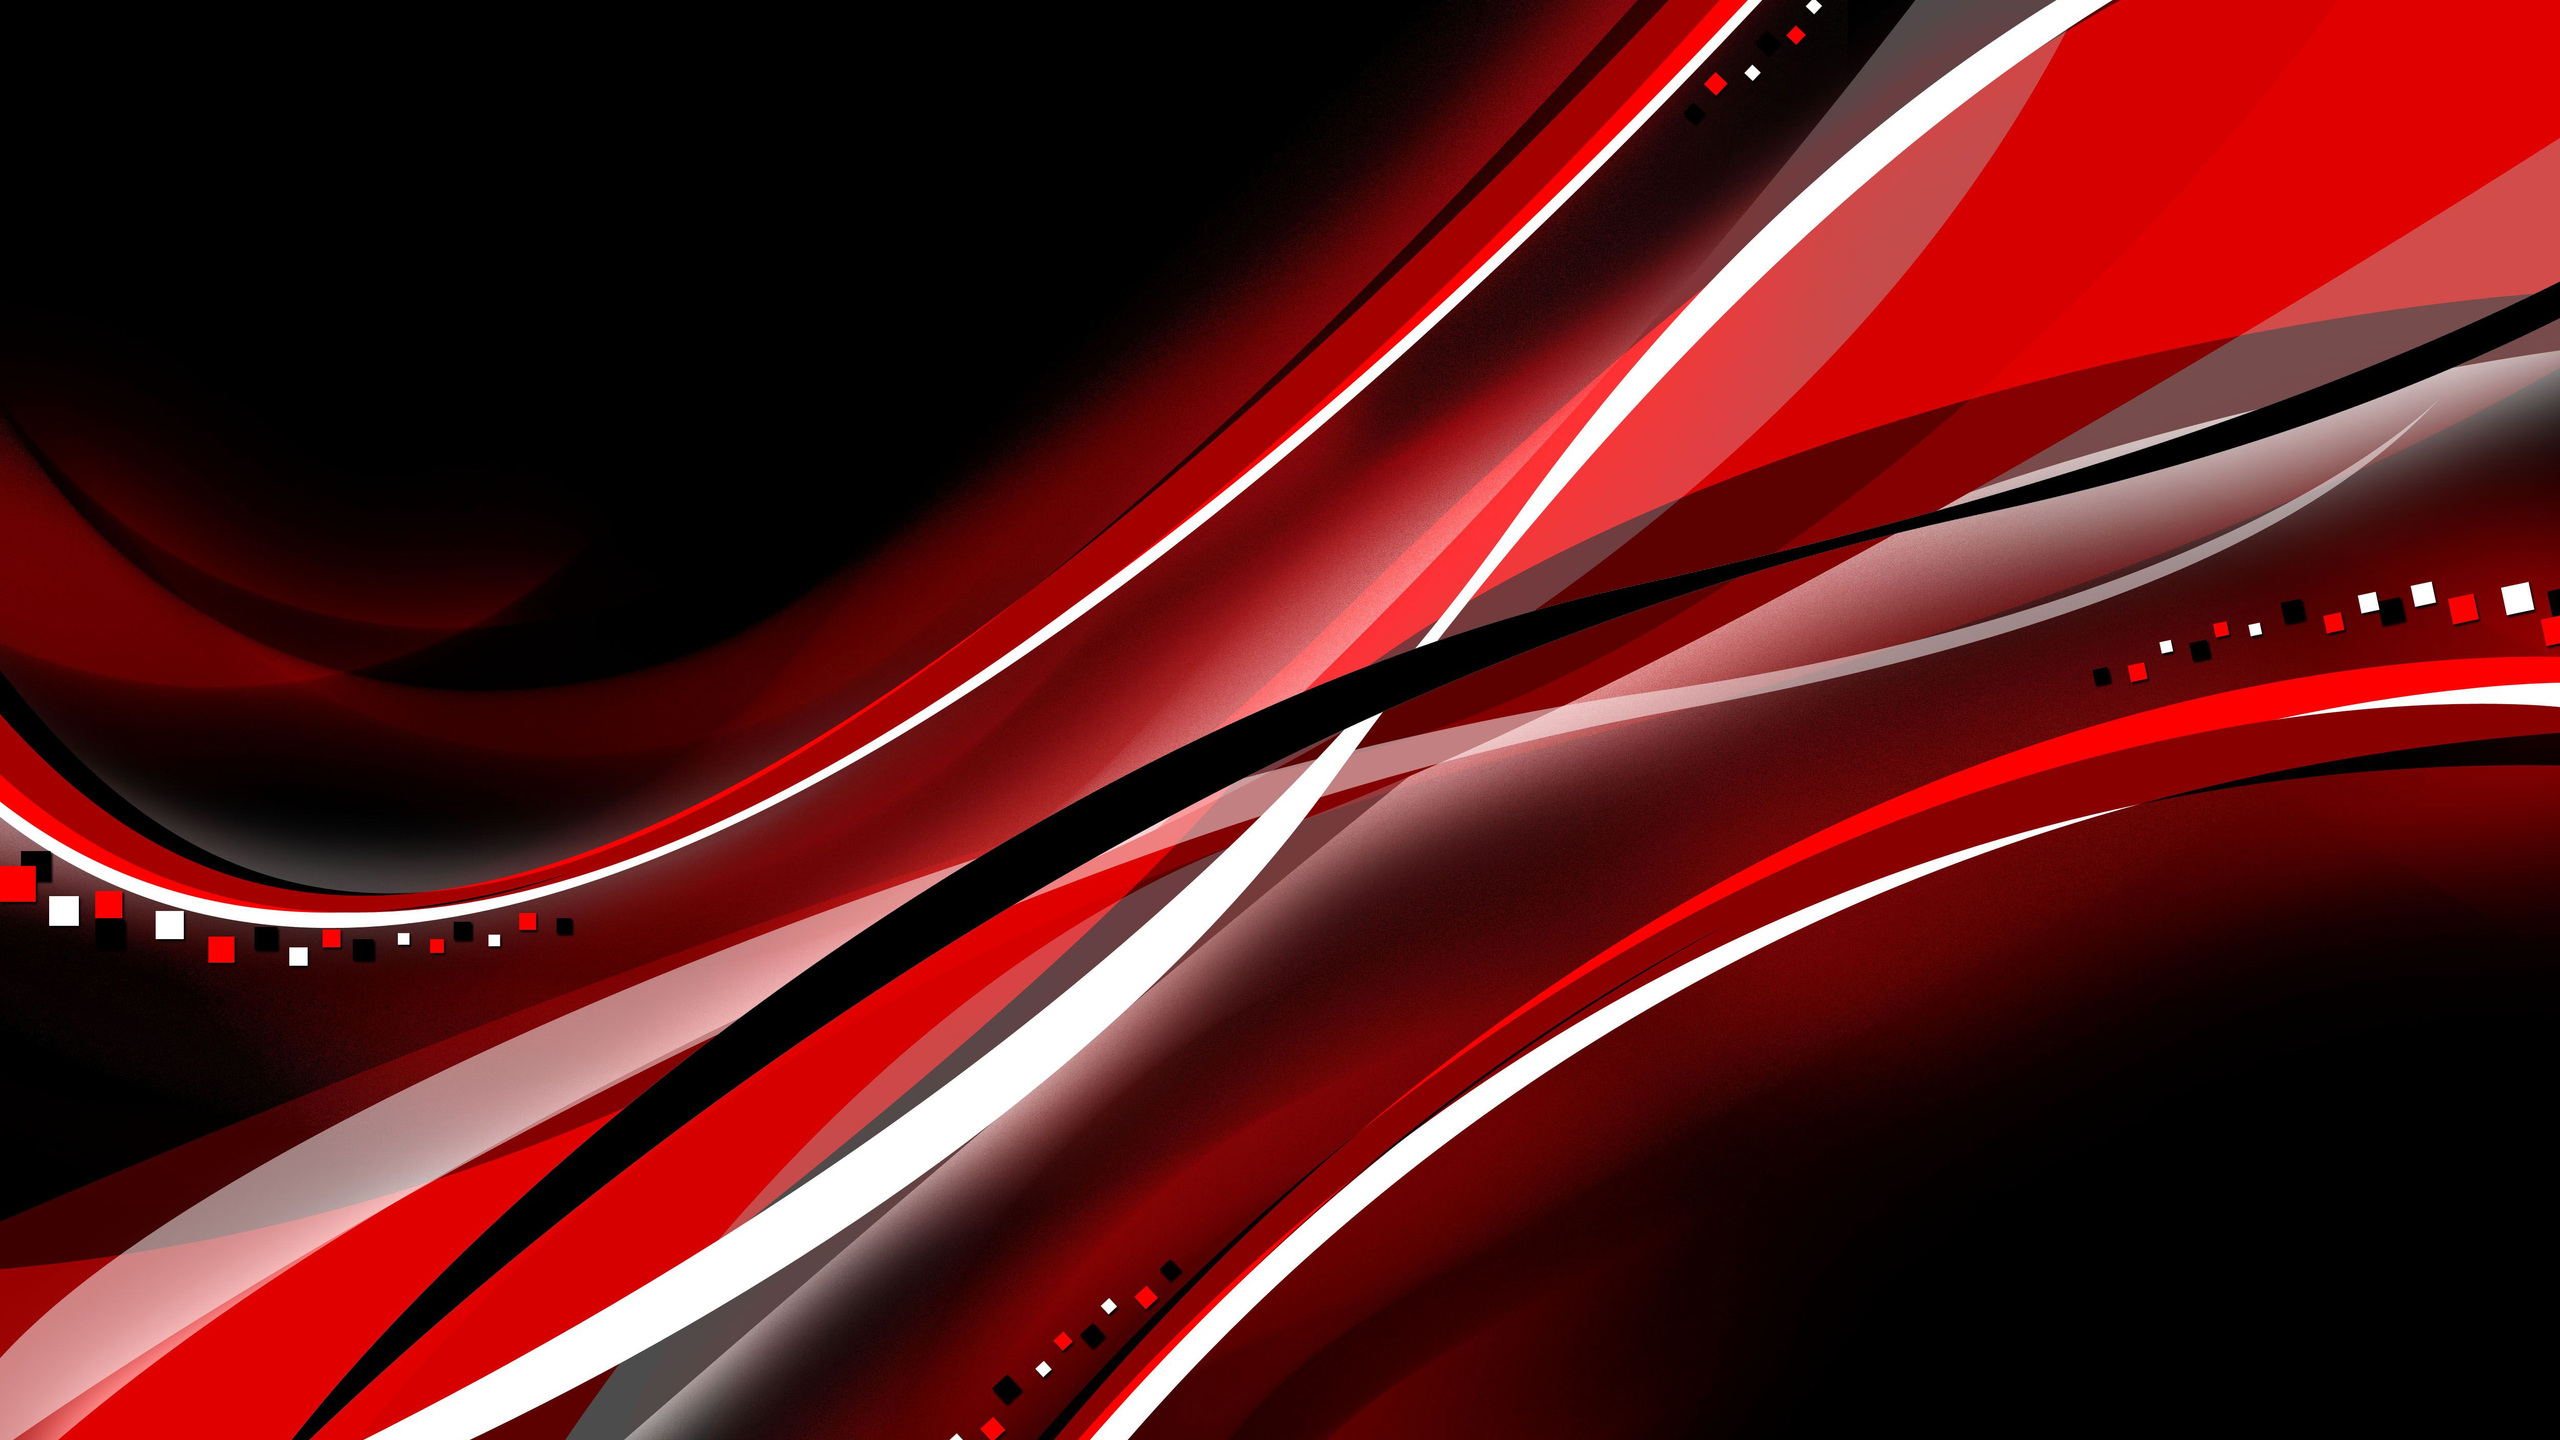 2560x1440 Red Black Color Interval Abstract 4k 1440P ...